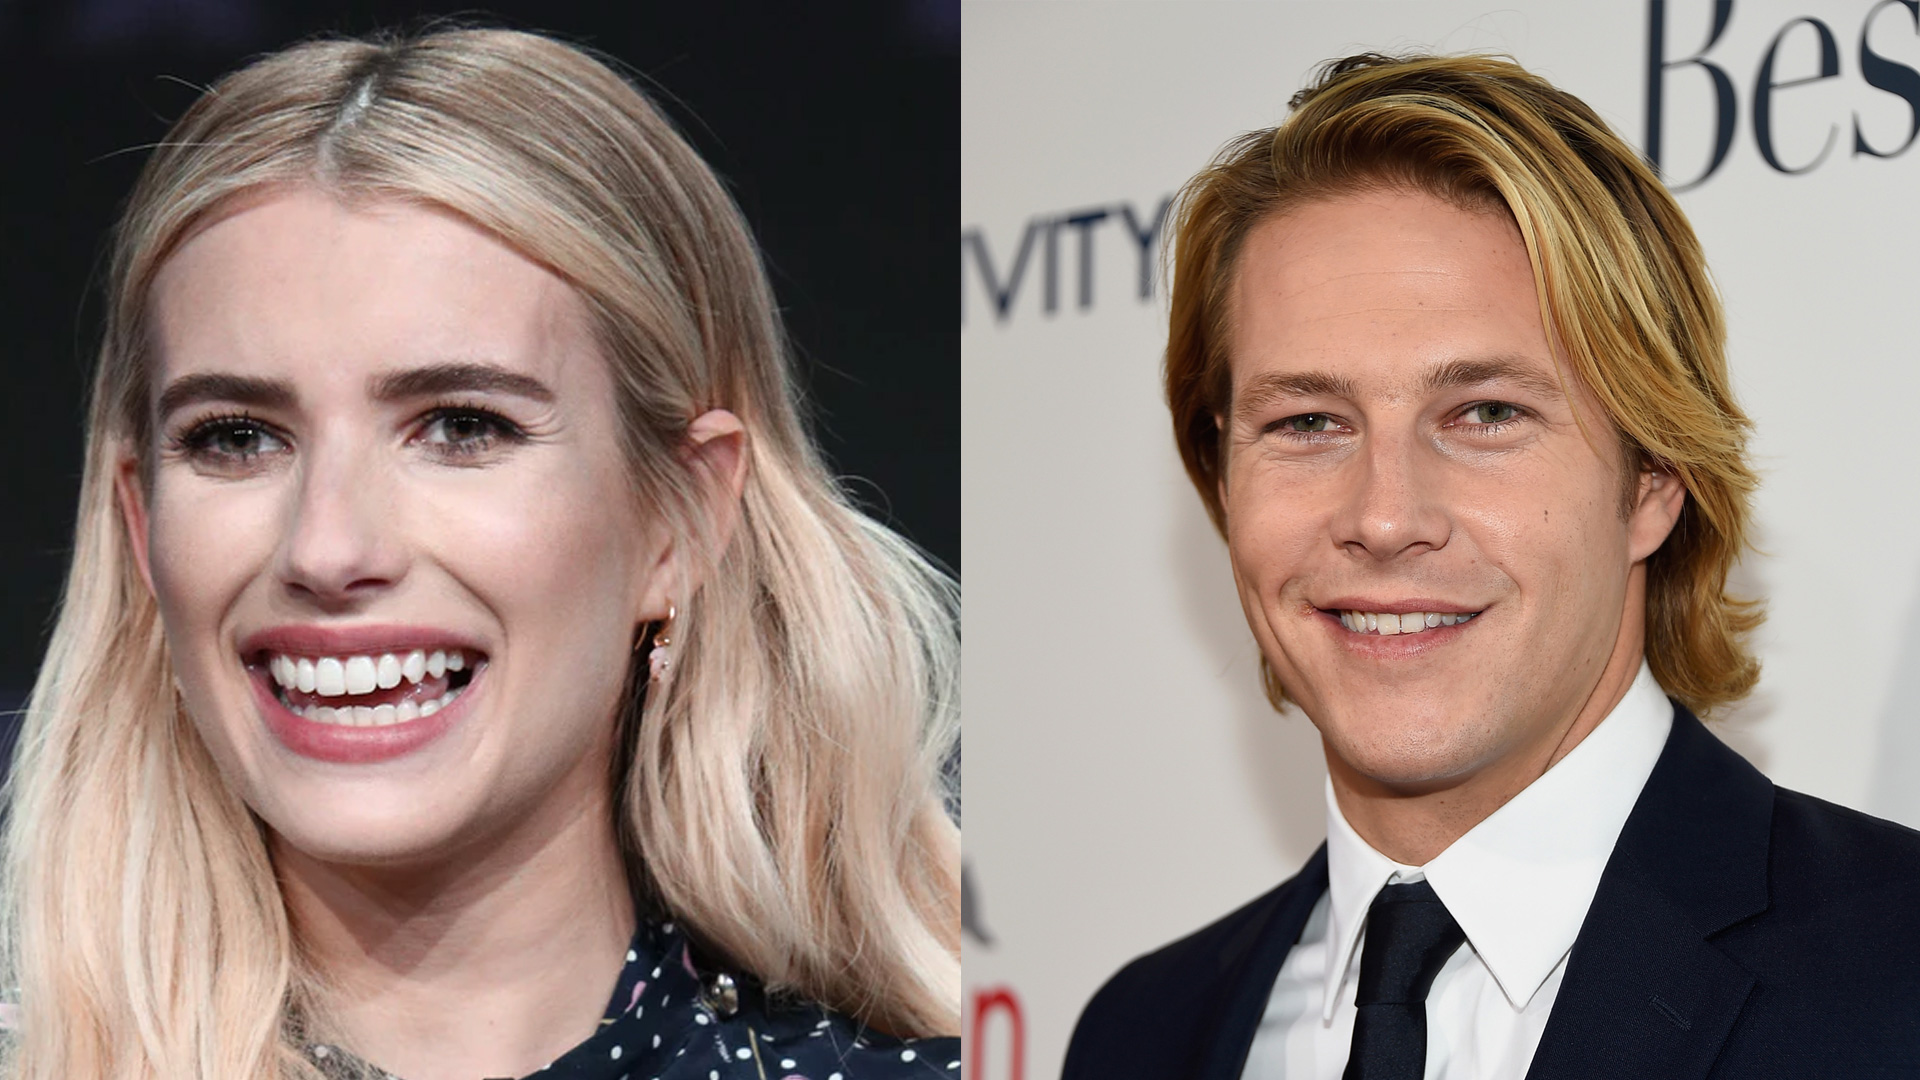 Emma Roberts And Luke Bracey To Star In Netflix Film Holidate New On Netflix News